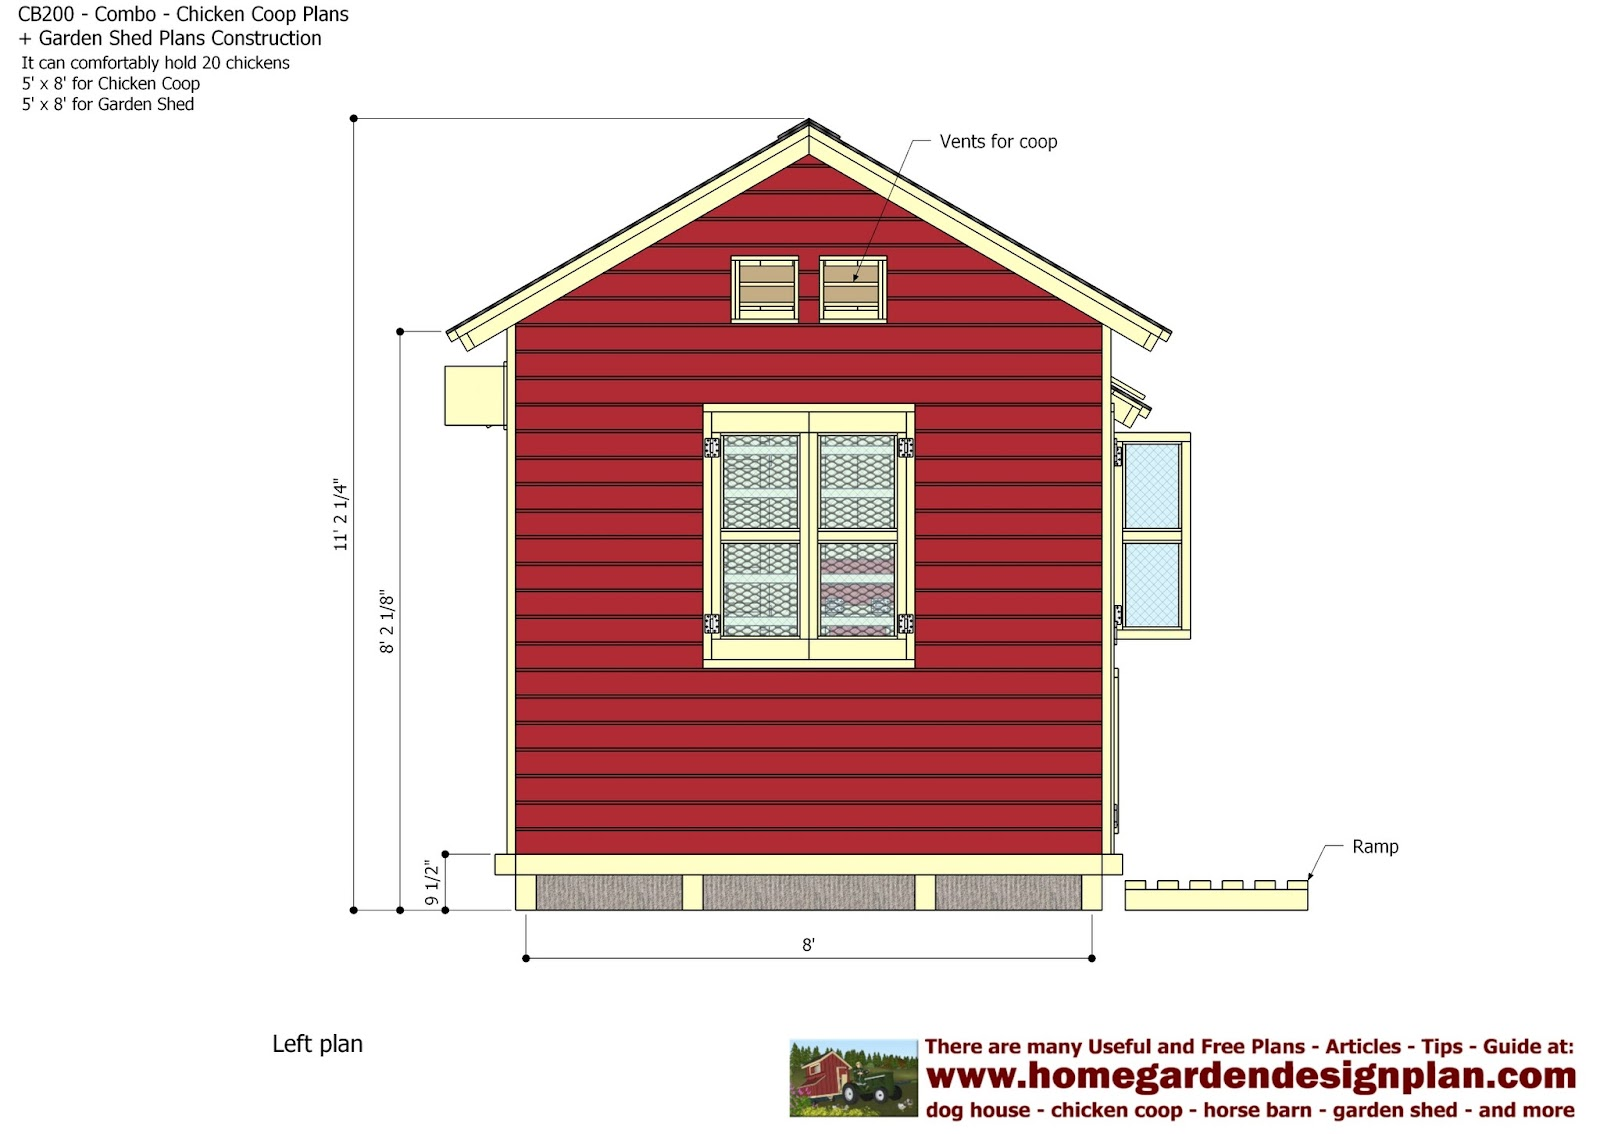 home garden plans cb200 combo plans chicken coop plans construction garden sheds storage sheds plans construction